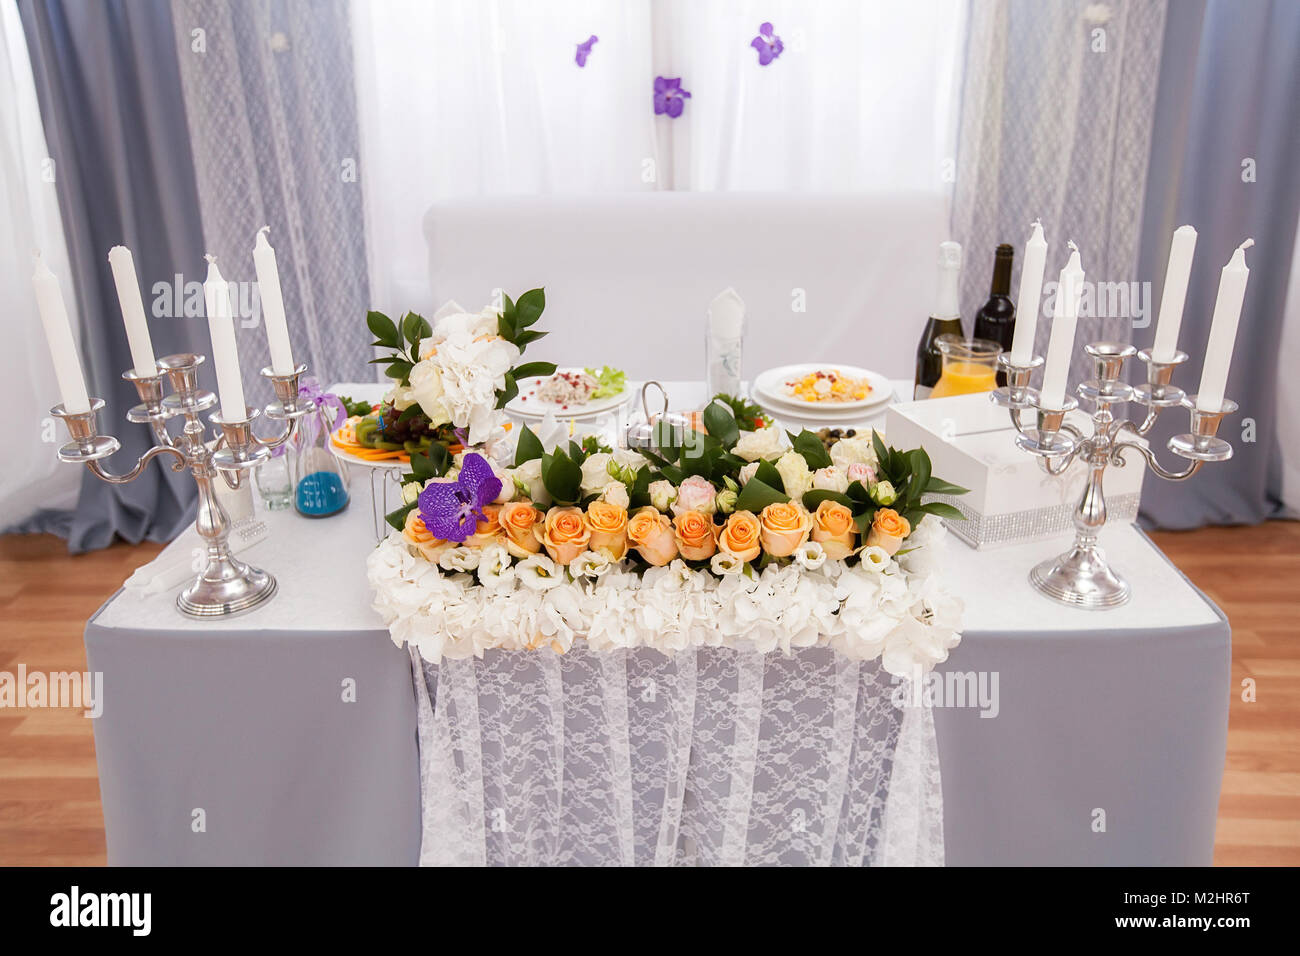 Wedding Banquet Table Decorated With Flowers And Serving In The - Banquet table setup ideas